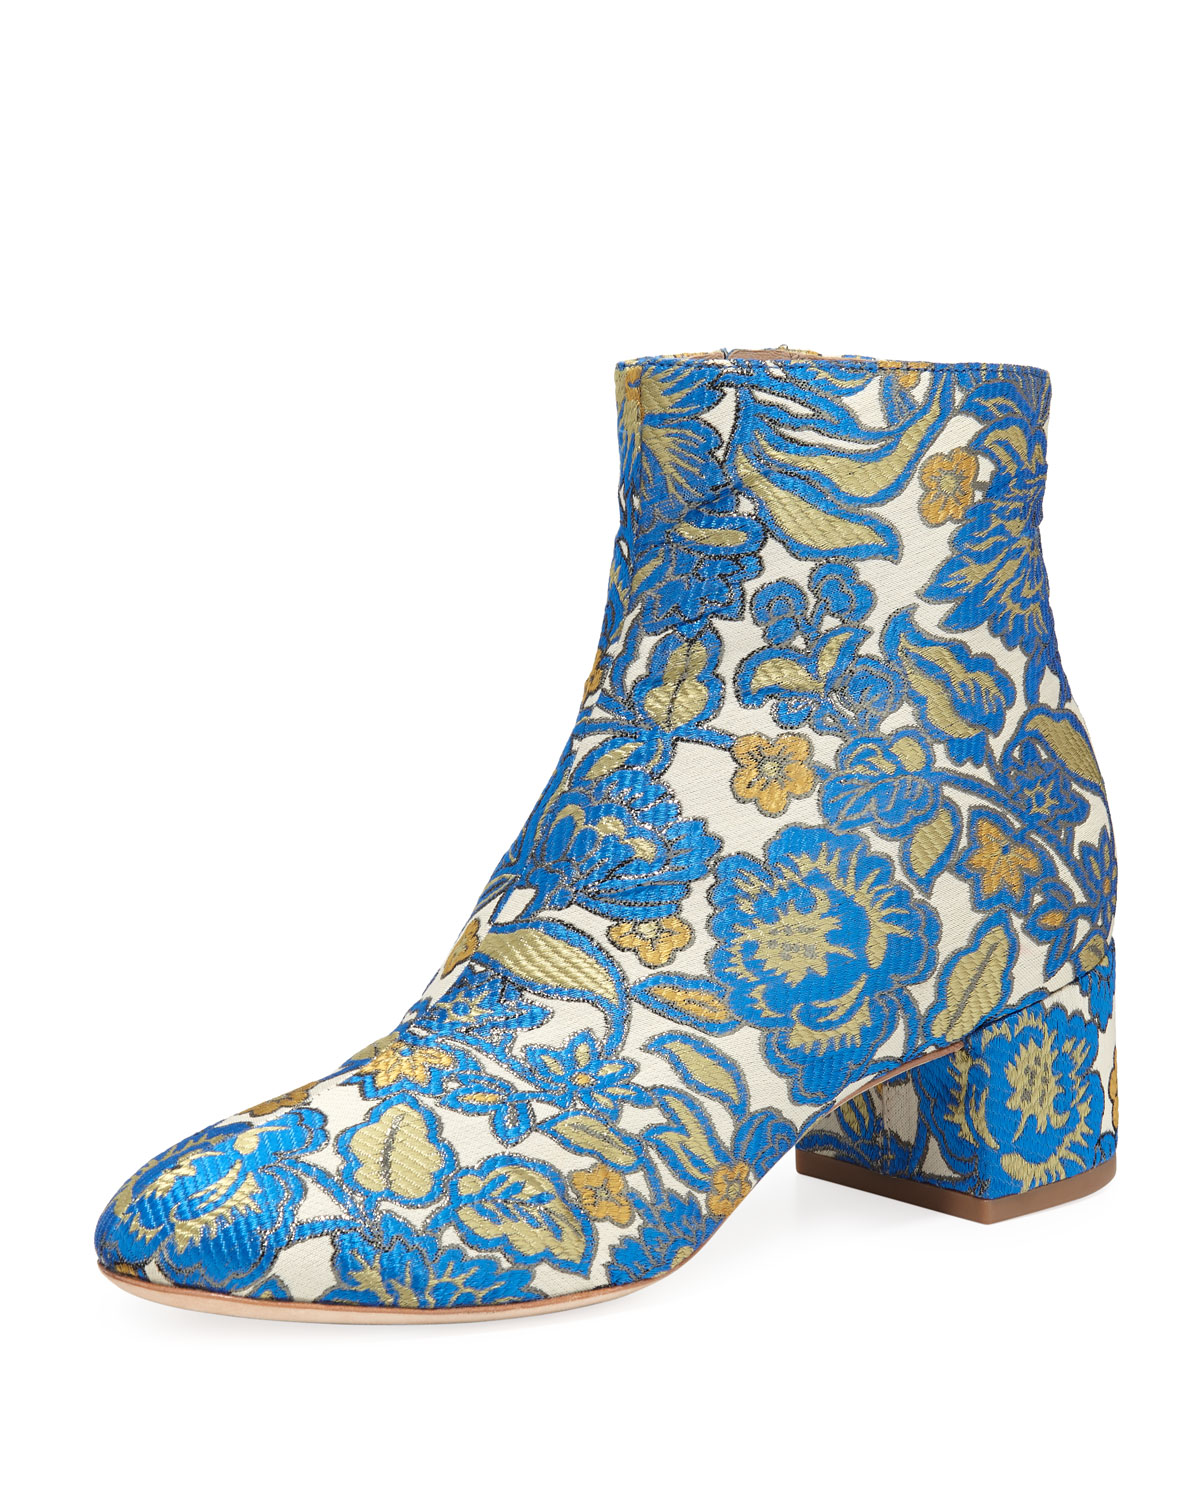 416d9efcf Tory Burch Shelby Jacquard 50mm Bootie